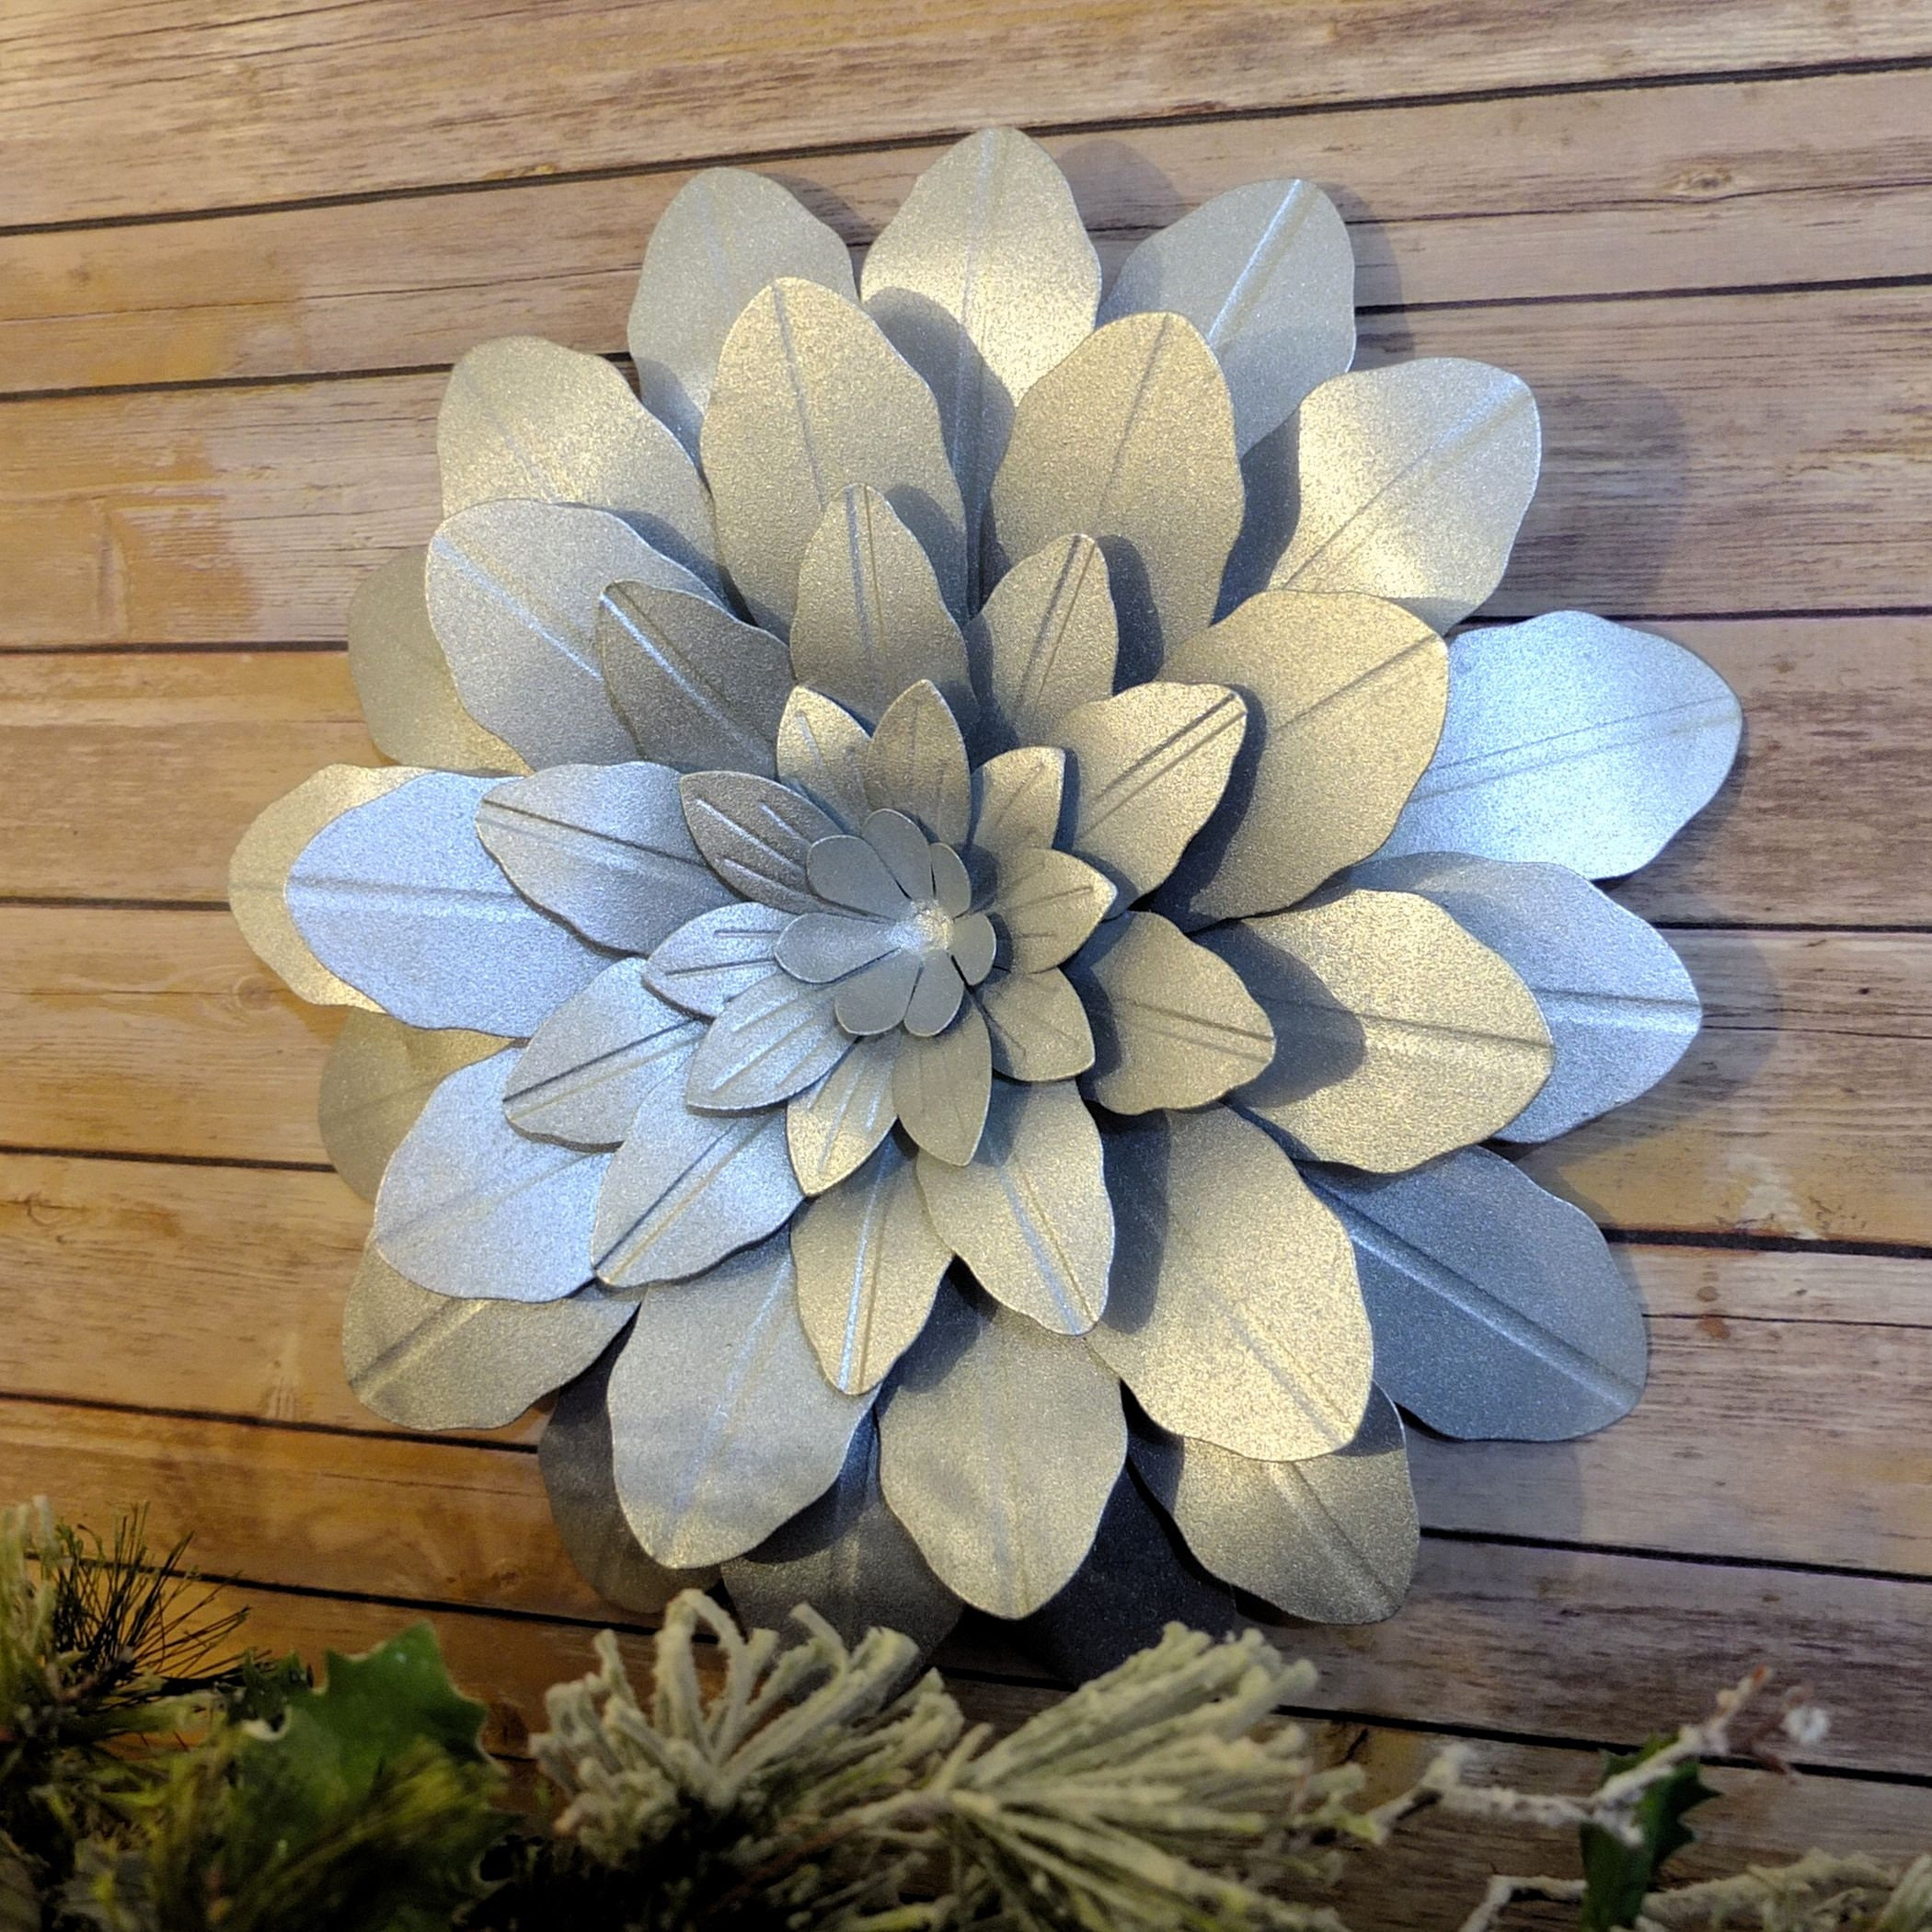 Silver Metal Christmas Wreath 17 Christmas Wall Decoration Rustic Outdoor Metal Christmas Decor For Patio Barn Or Porch